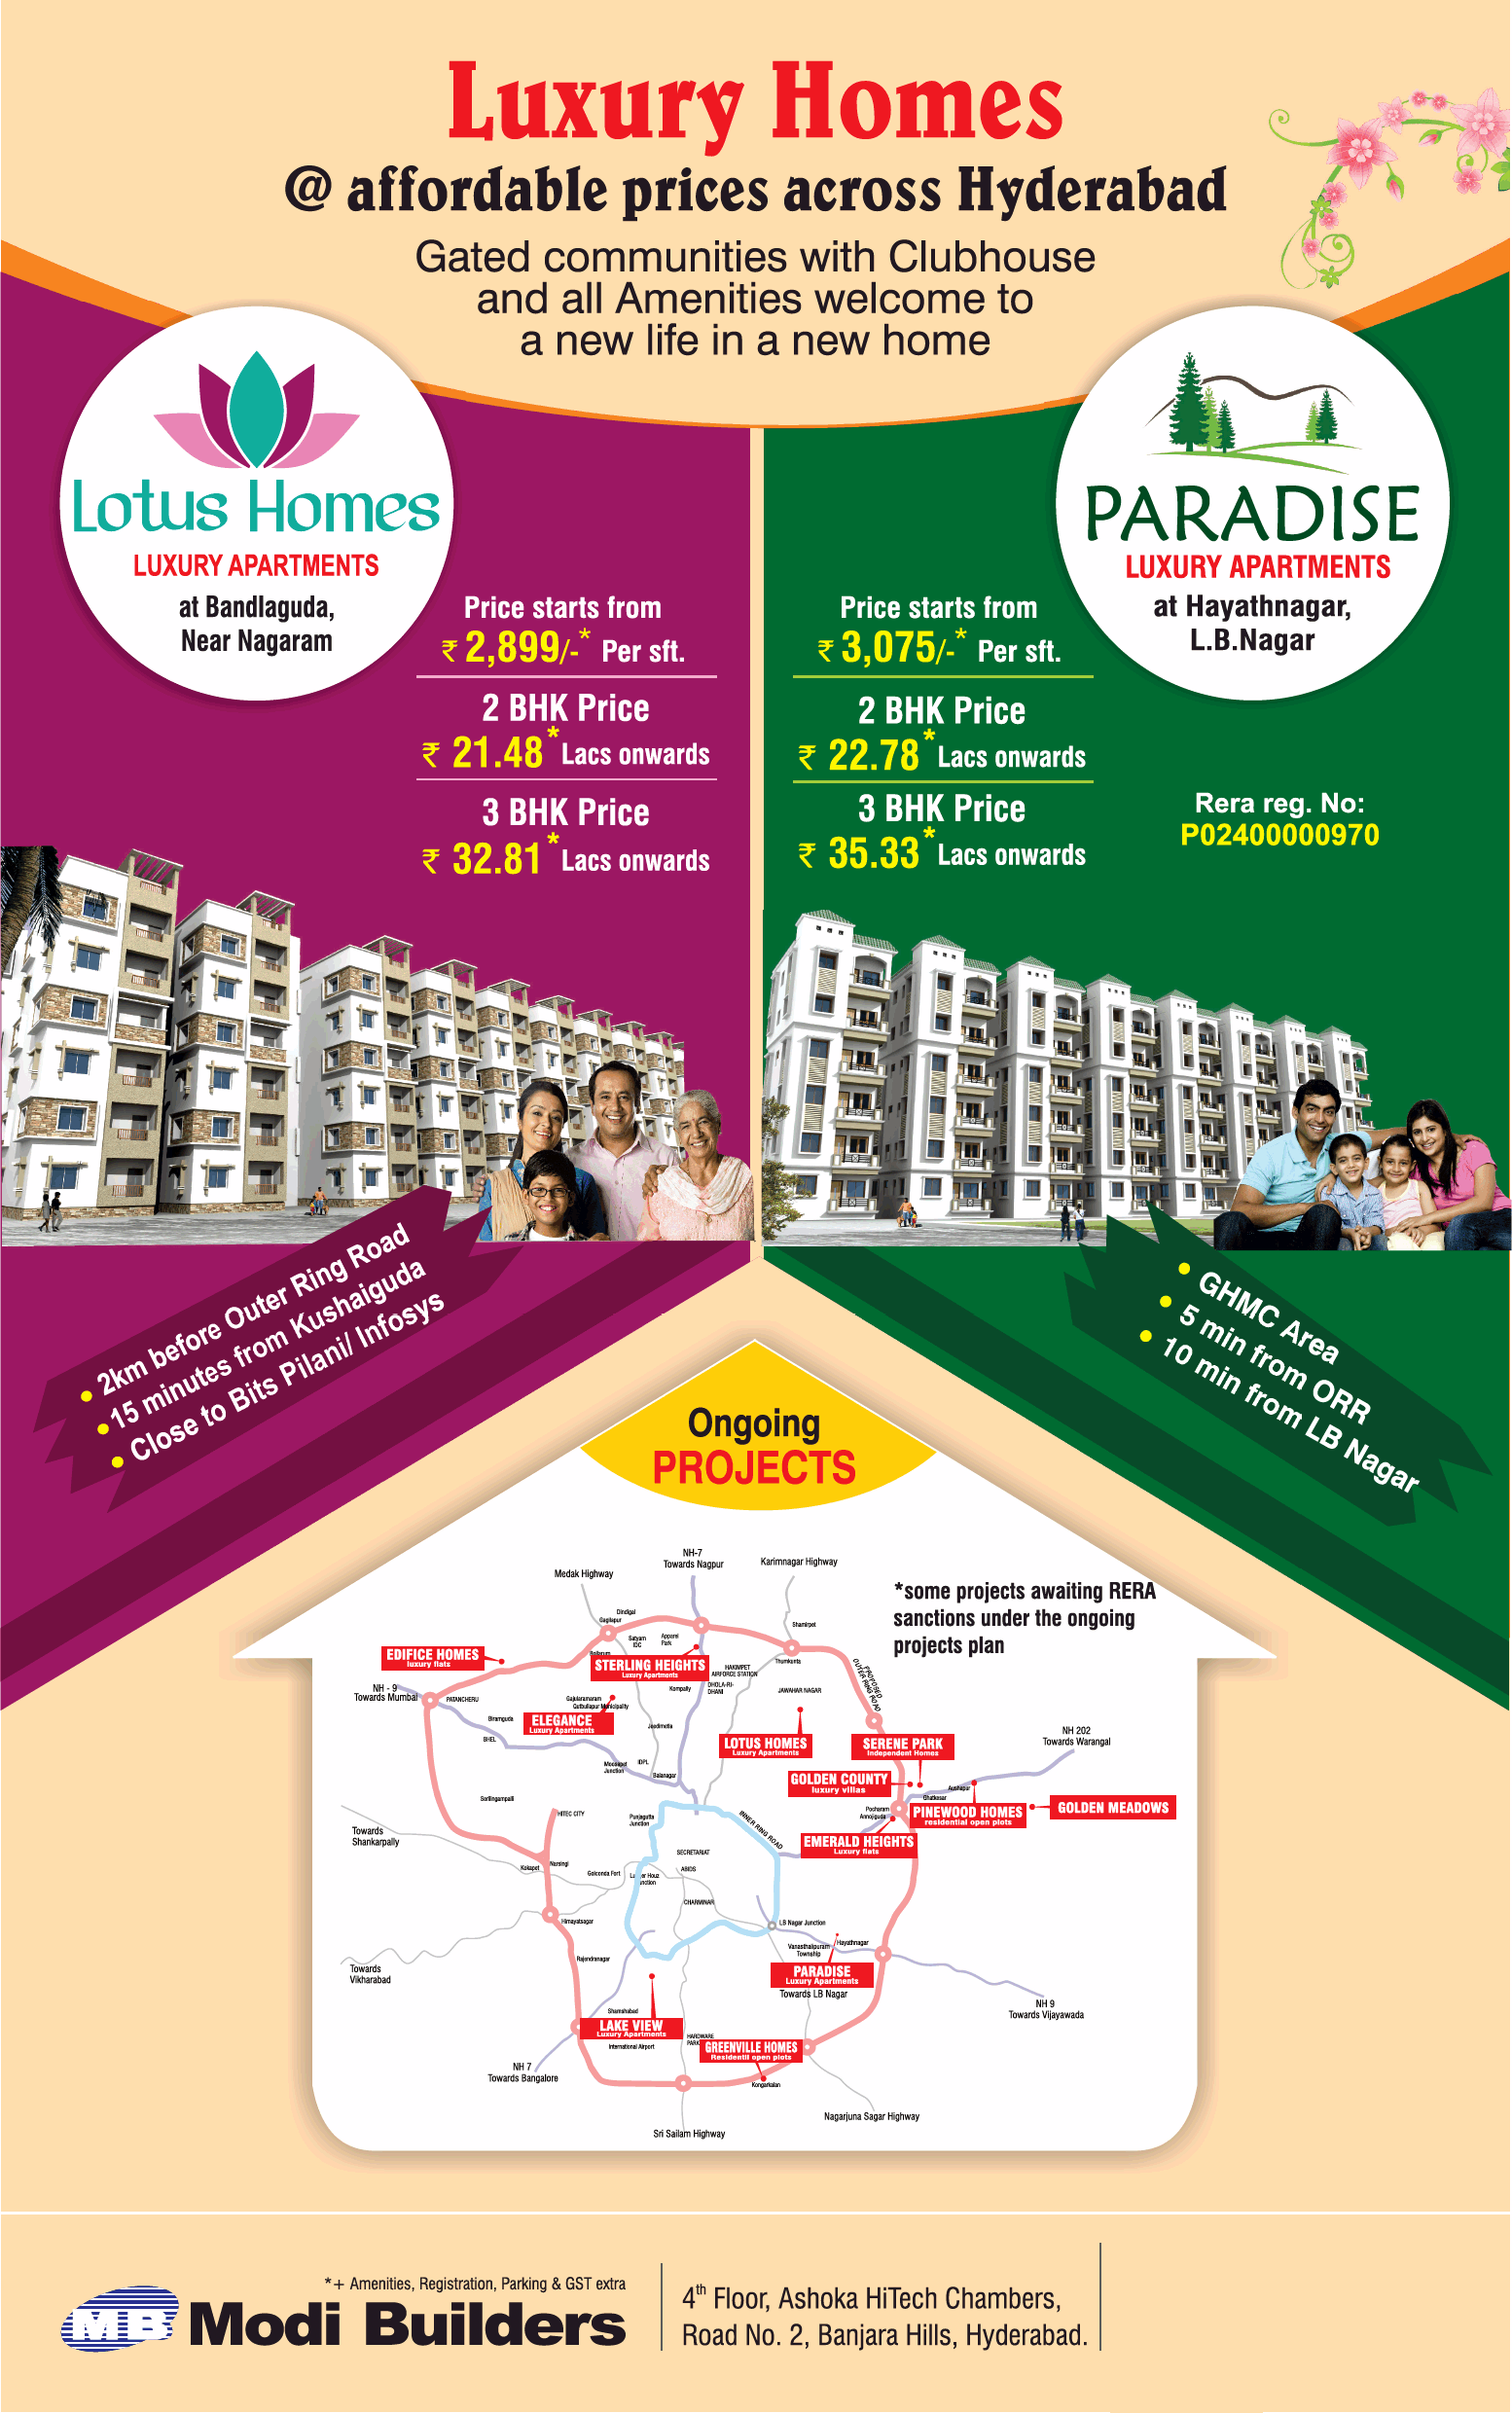 Luxury homes at affordable prices by Modi Builders Hyderabad